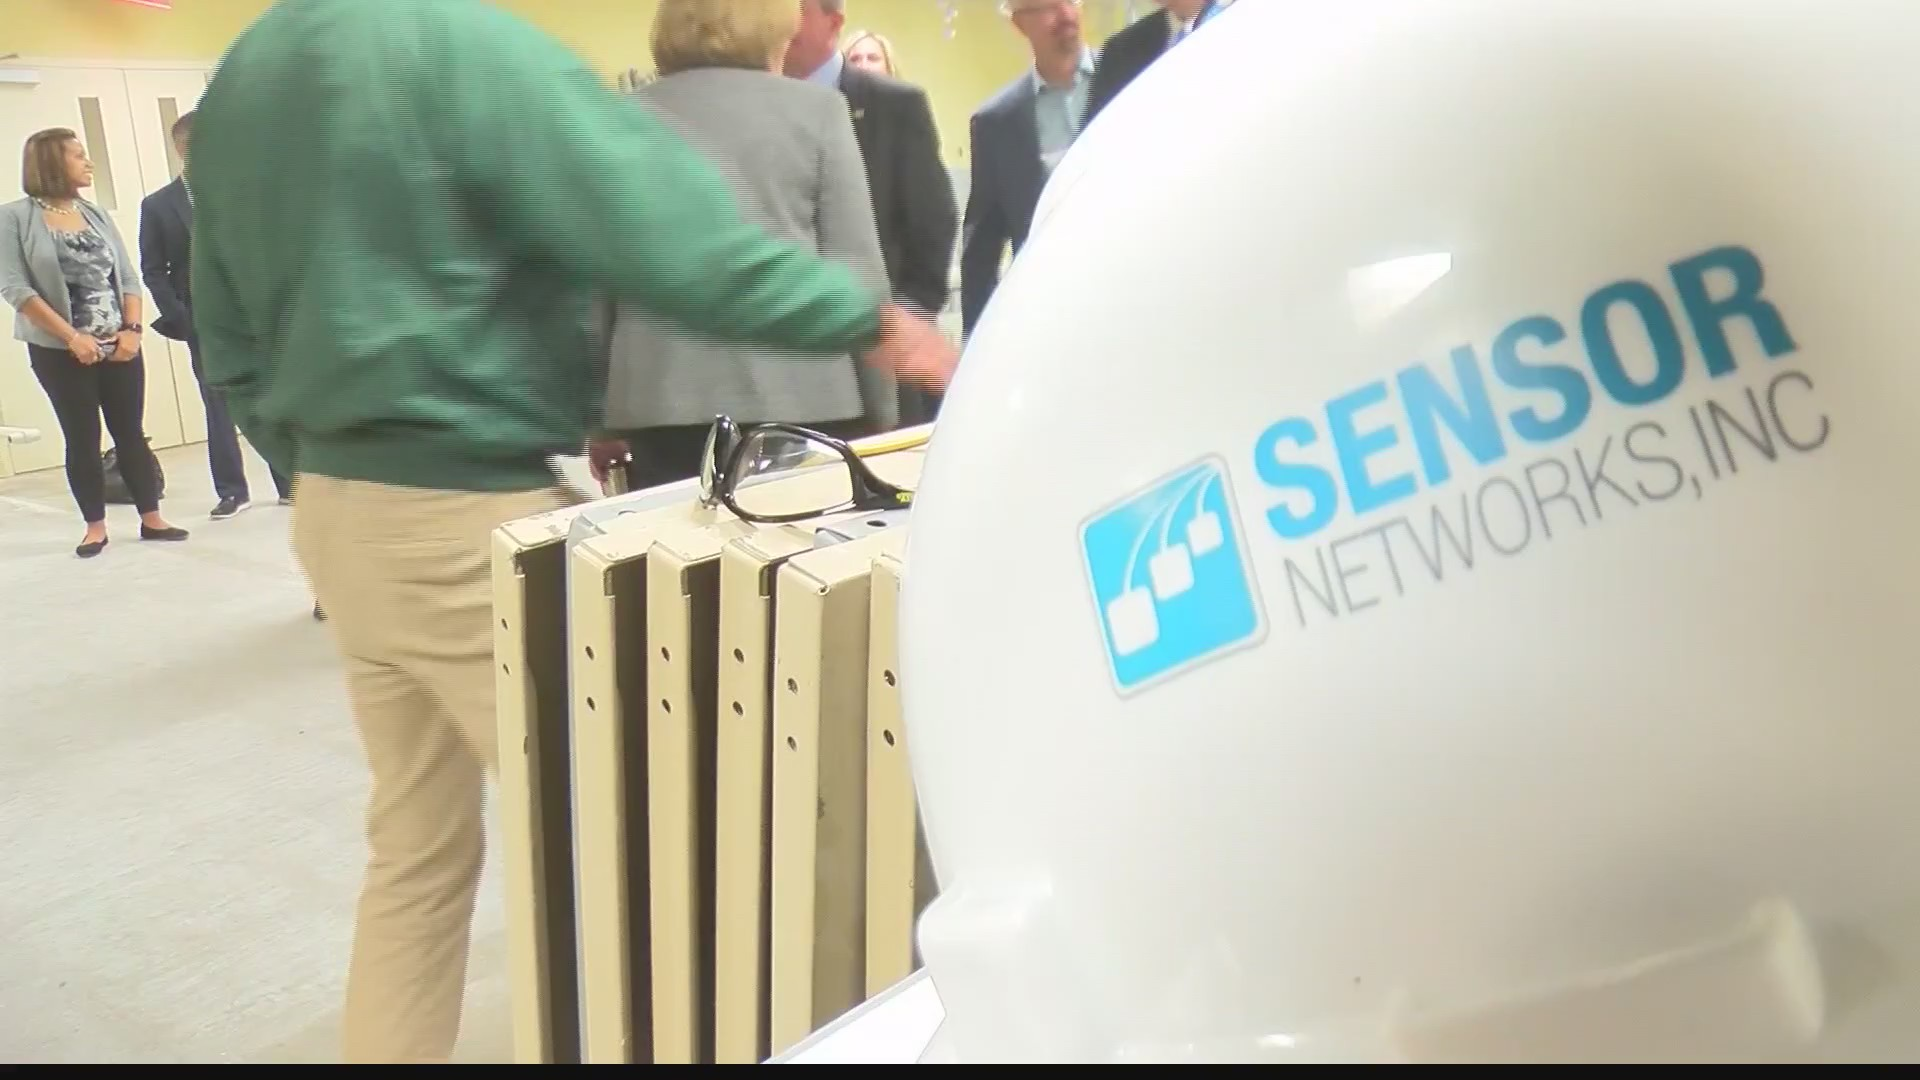 Sensor Networks is expanding to a new building in State College... larger space means room for new employees